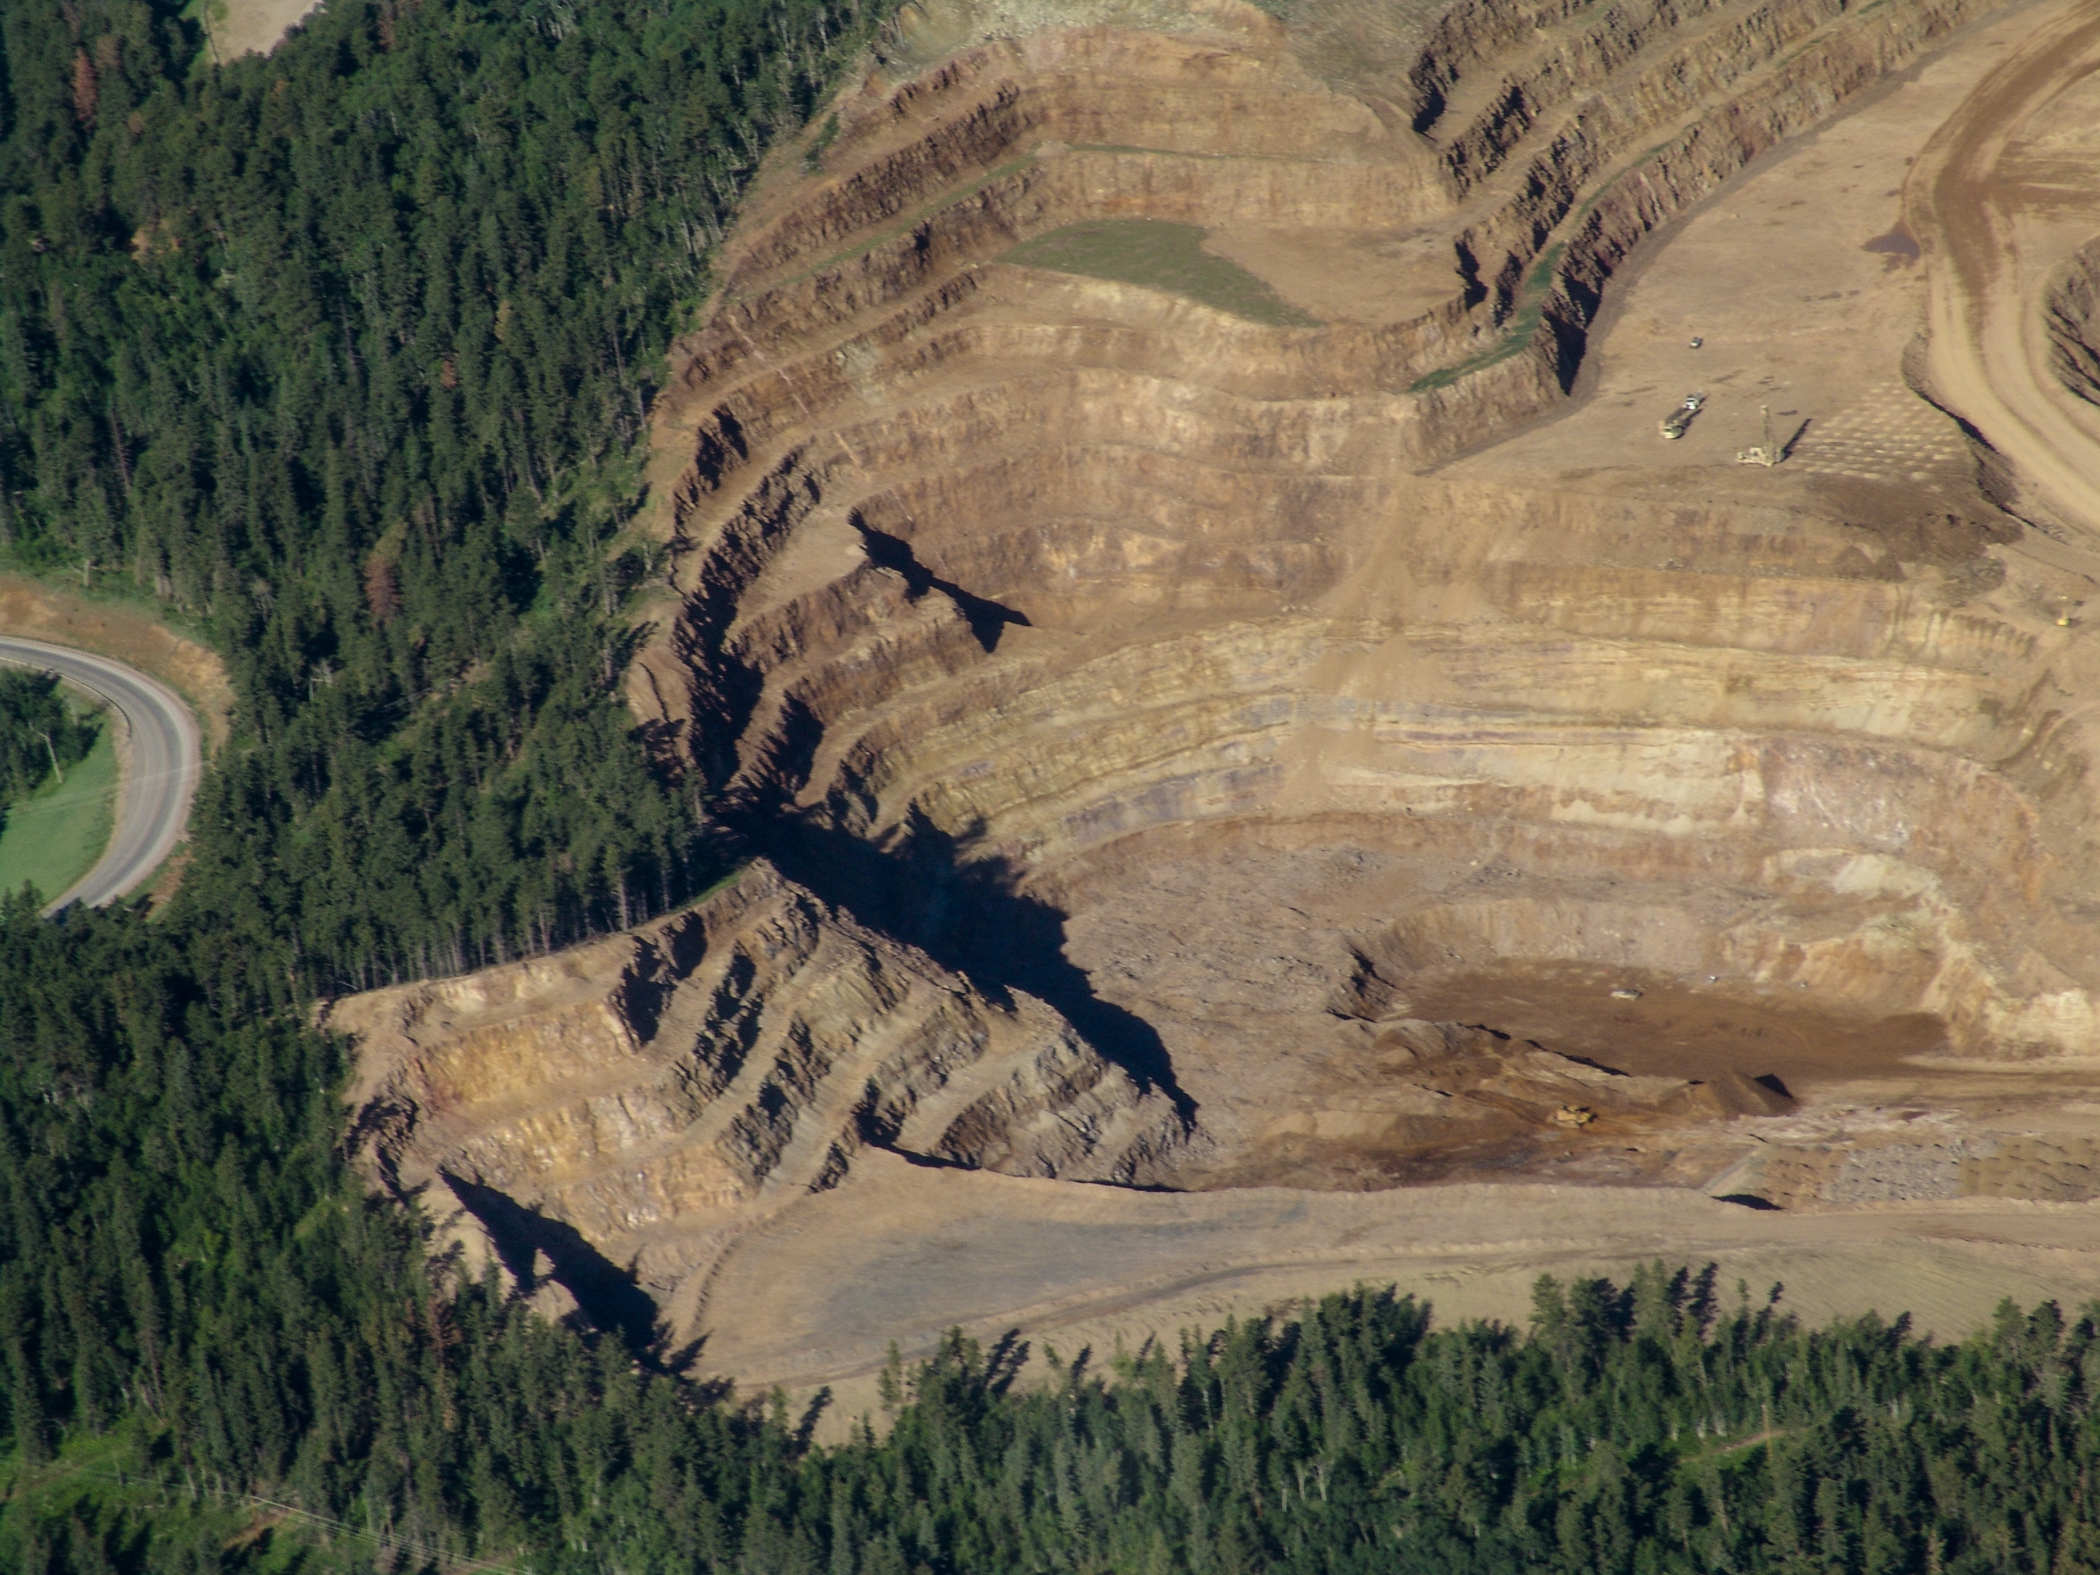 Land Reclamation (Black Hills)  Perspective can shift perception. What do you see?  Lion Eyes Can See Inside Fighting Minds . (c-print)